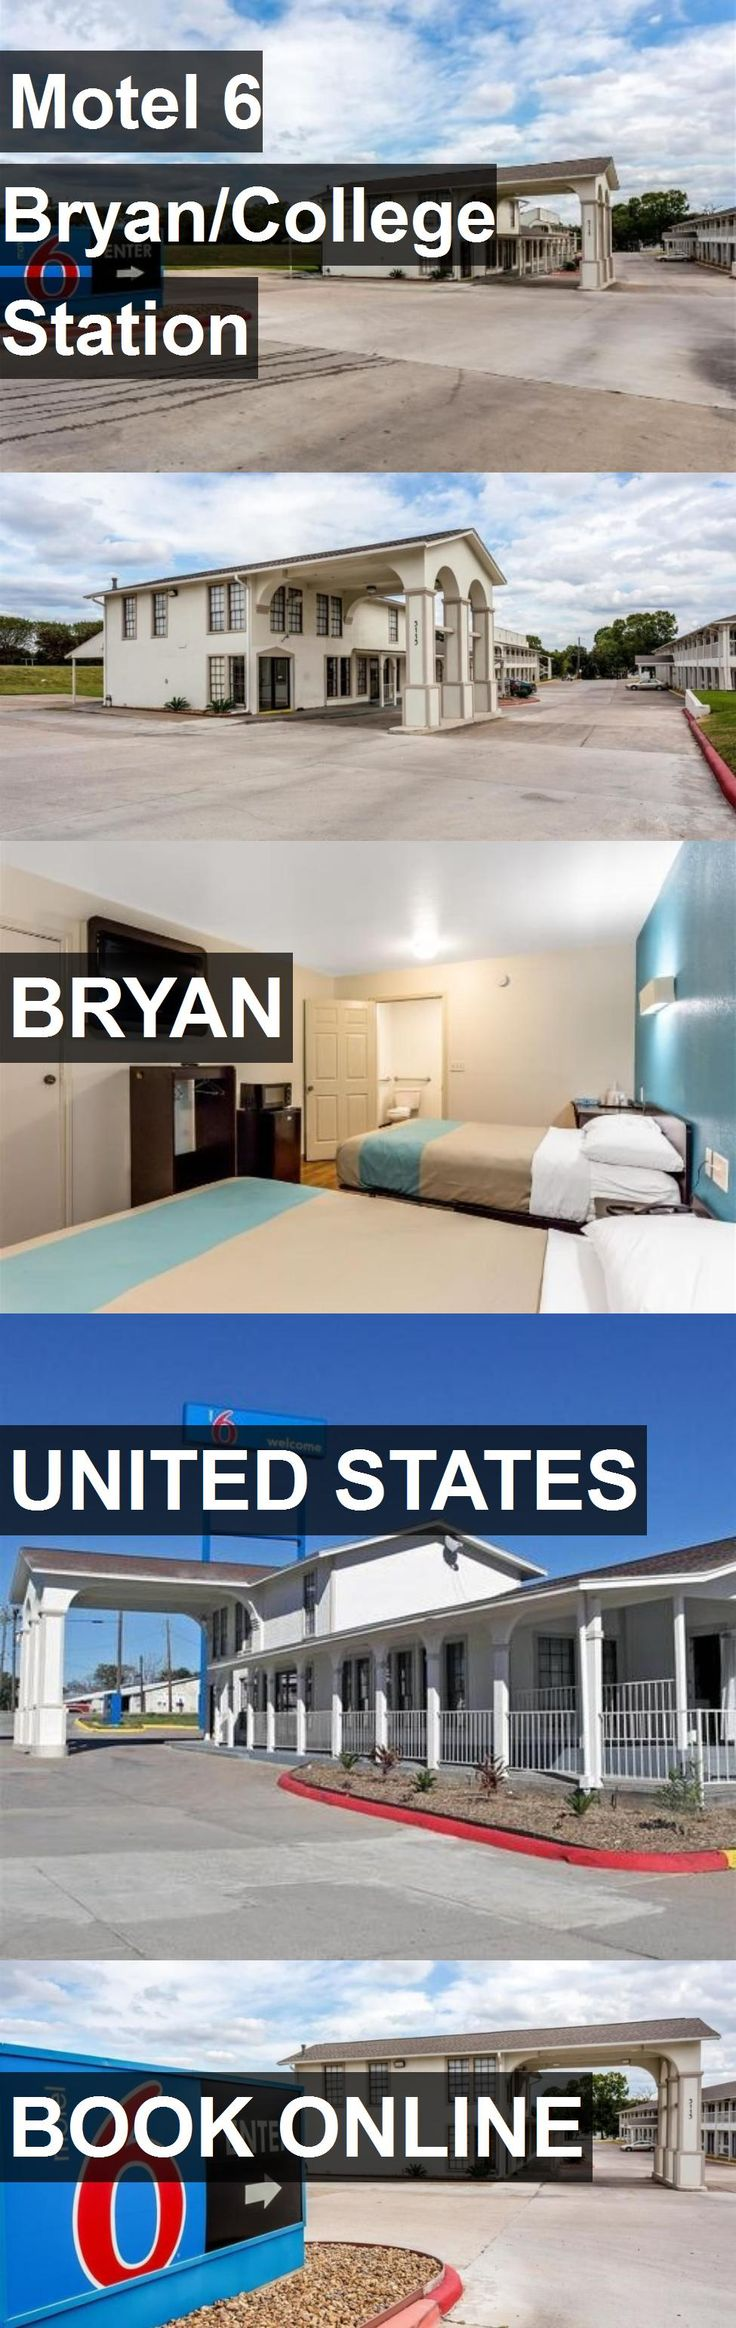 Hotel Motel 6 Bryan/College Station in Bryan, United States. For more information, photos, reviews and best prices please follow the link. #UnitedStates #Bryan #travel #vacation #hotel